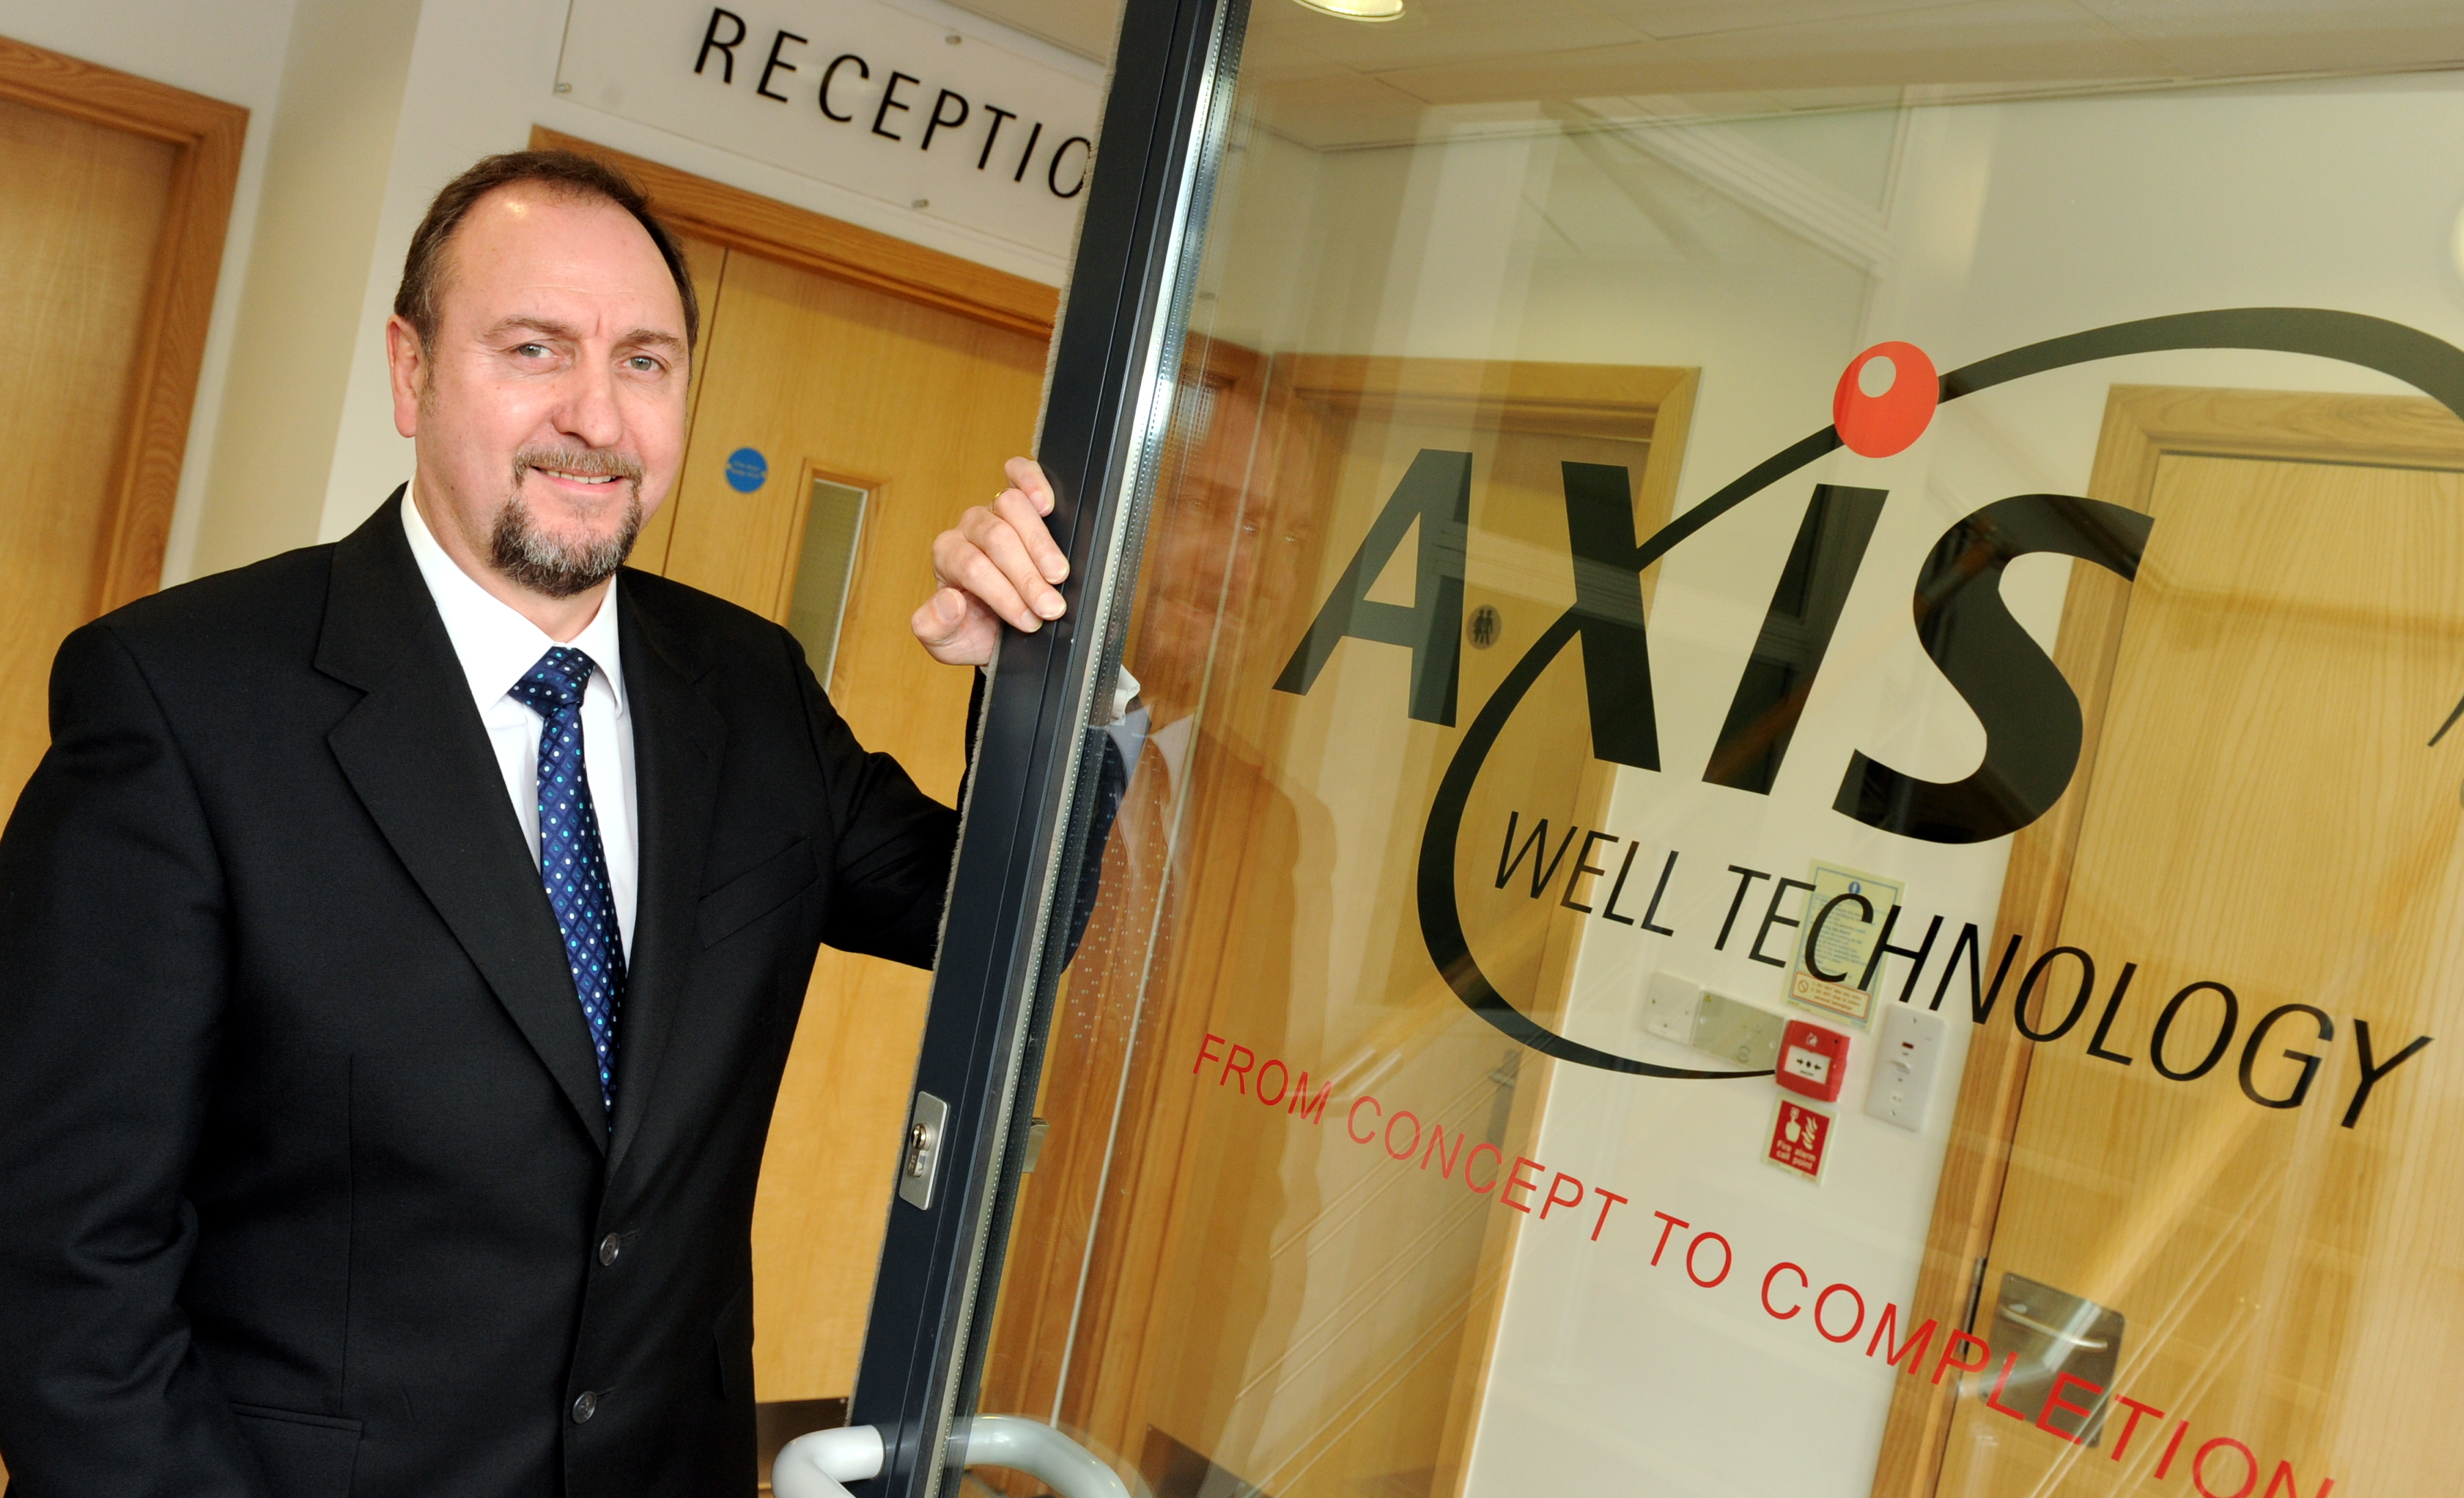 Axis Well Technology chief executive Jim Anderson